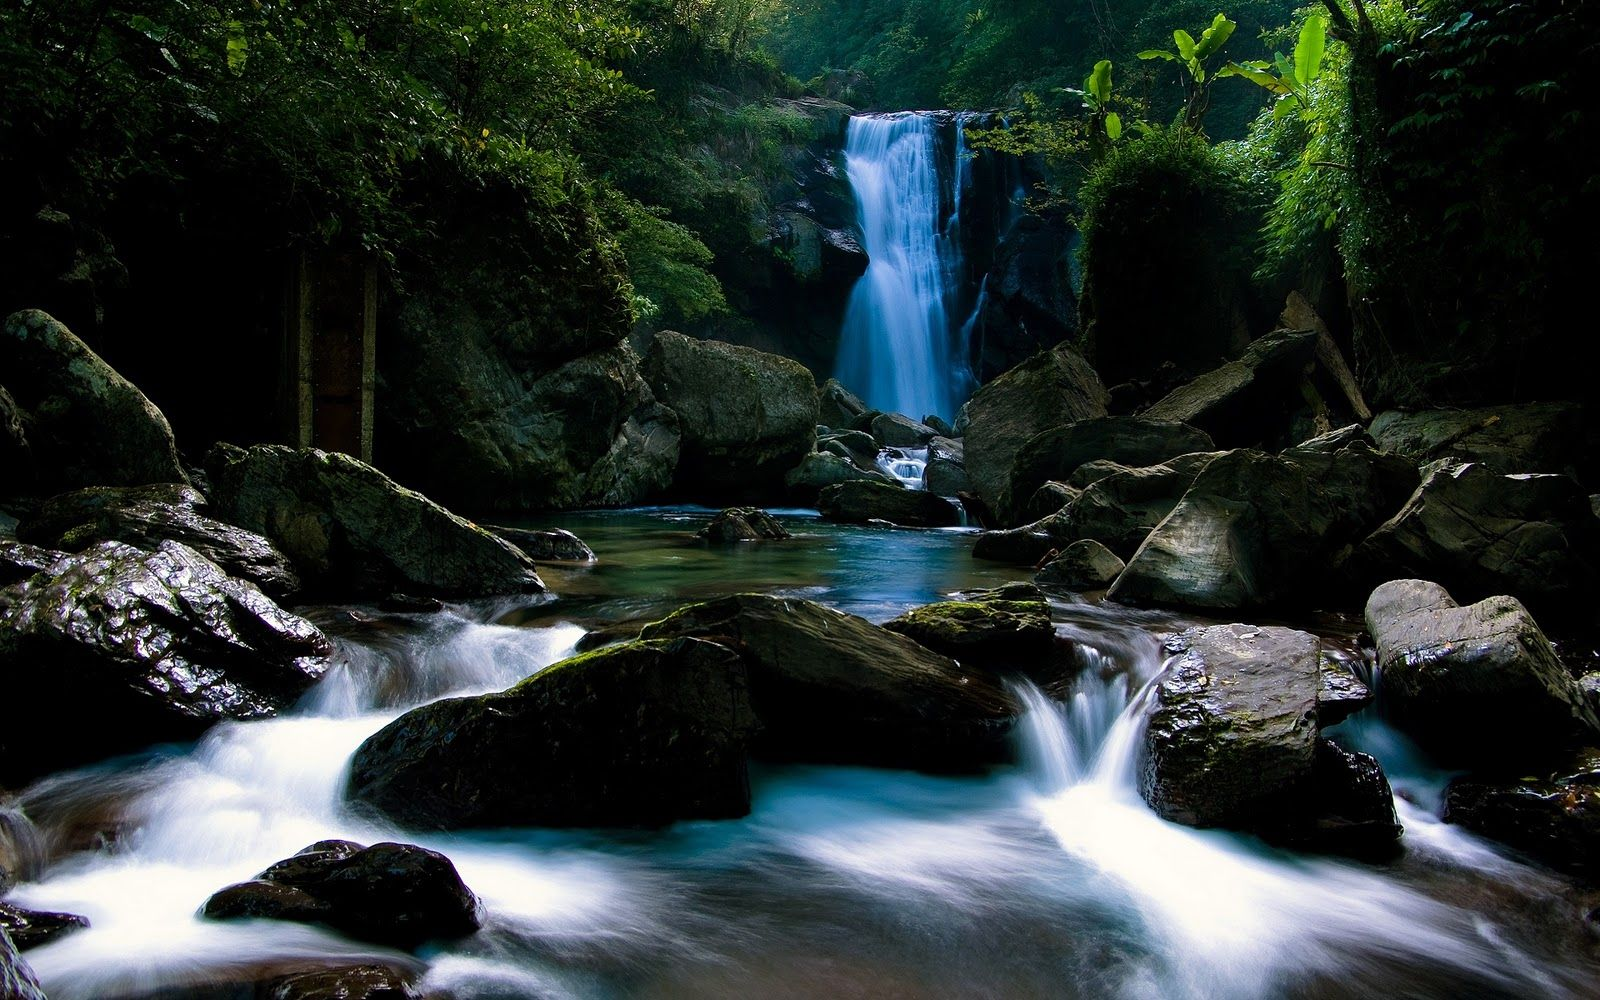 Wallpaper 3d Animated 3d Screensaver Animated Hd Nature Wallpapers Waterfall Wallpaper Waterfall Pictures